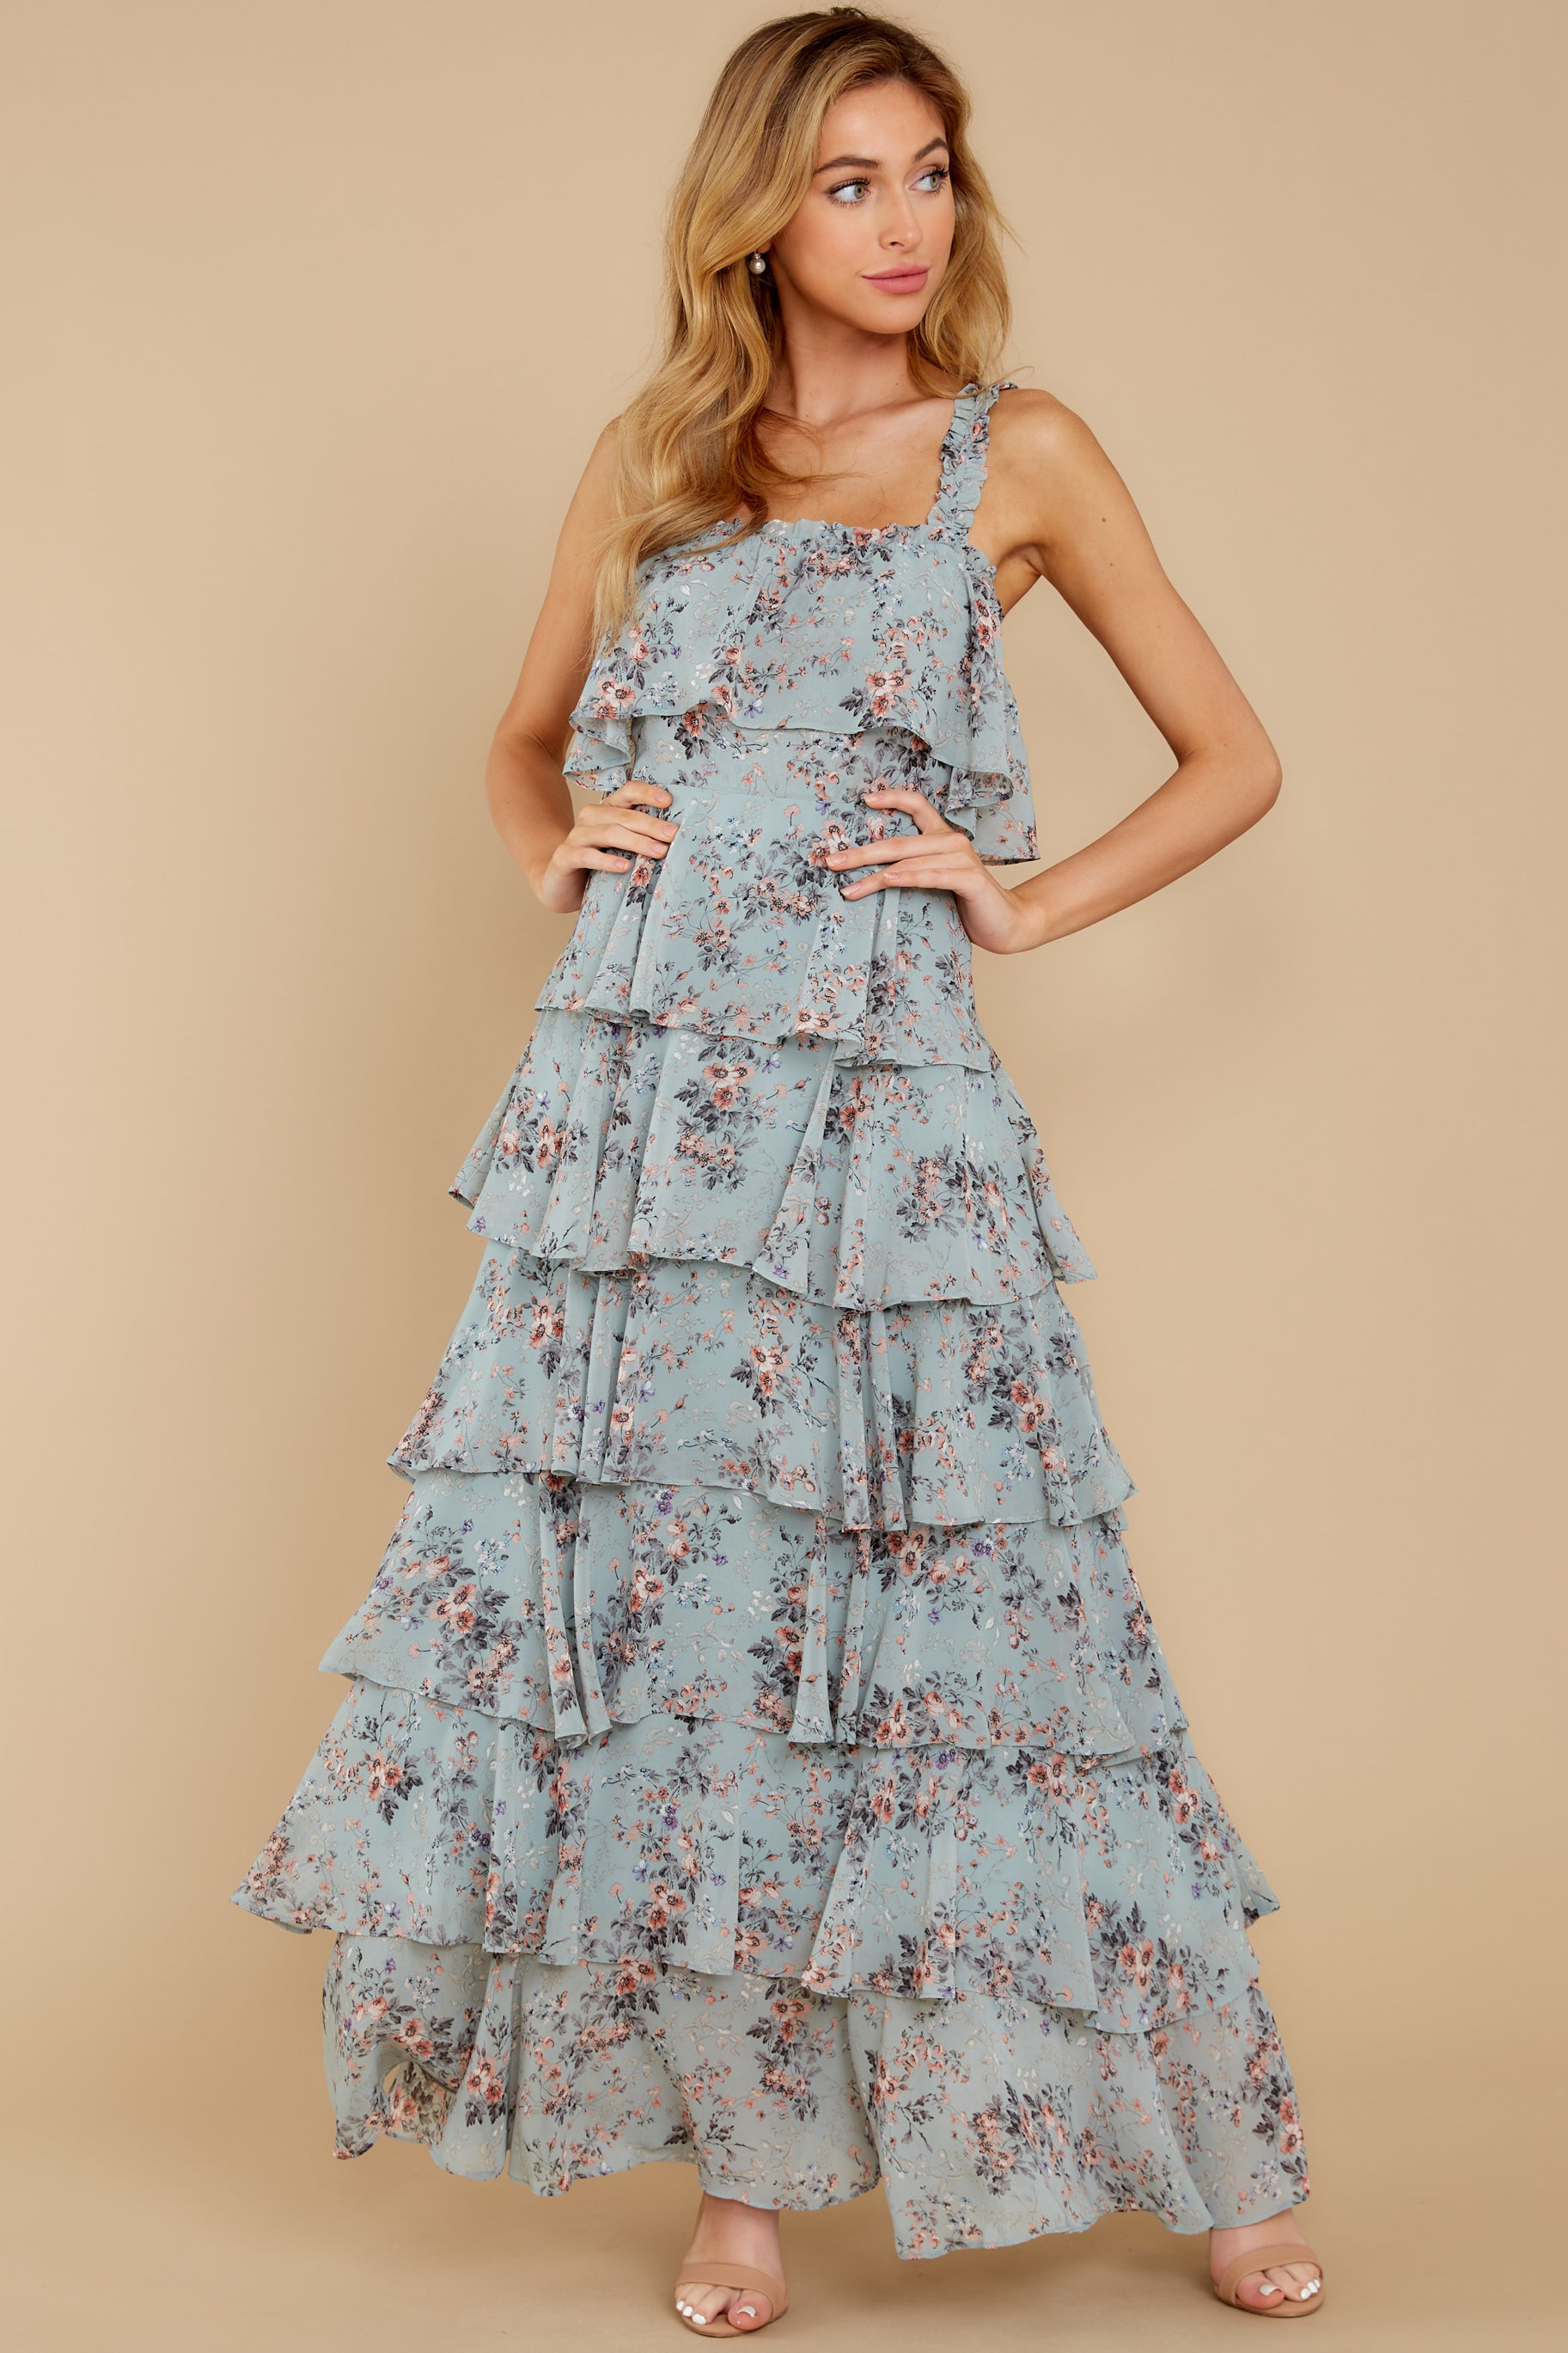 2 The Story's Not Over Light Blue Floral Print Maxi Dress at reddress.com